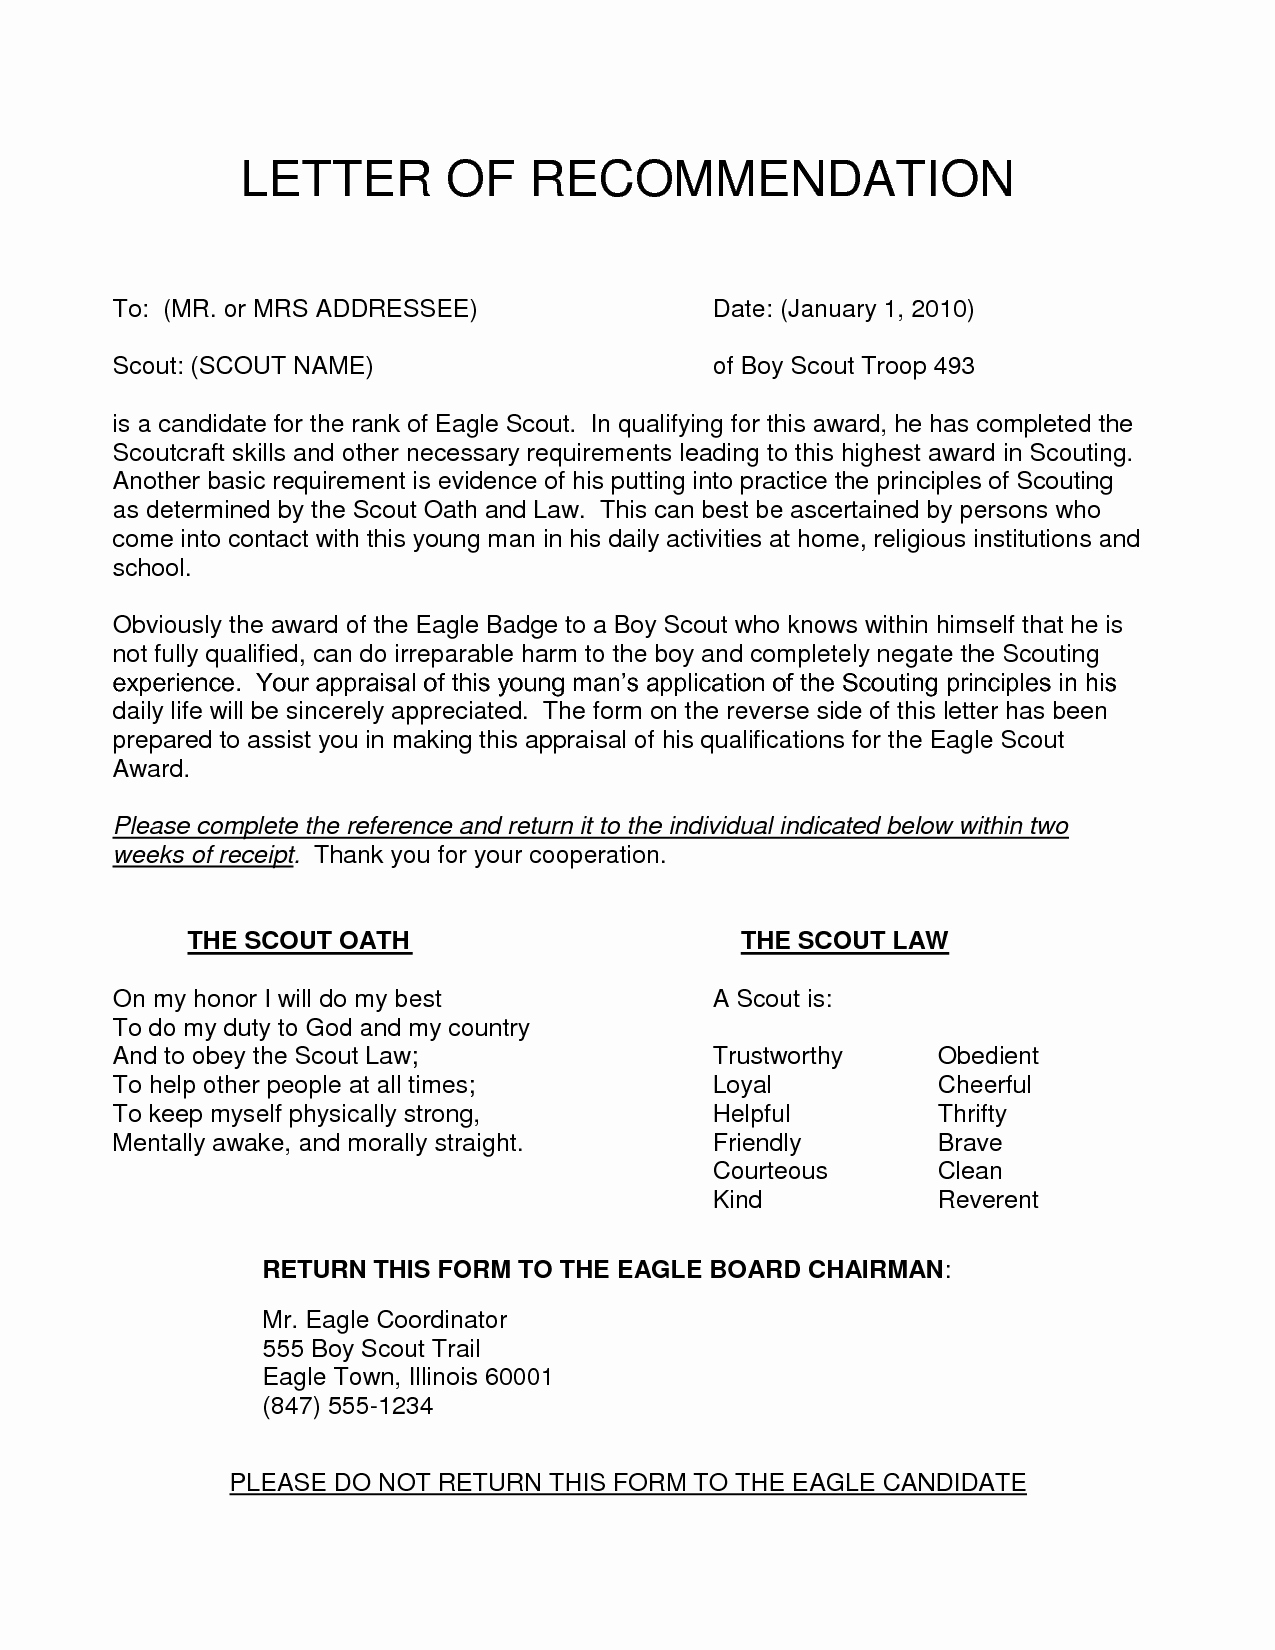 Eagle Scout Recommendation Letter Samples Inspirational Pin by Terry Duvall On Eagle Scout Letters Of